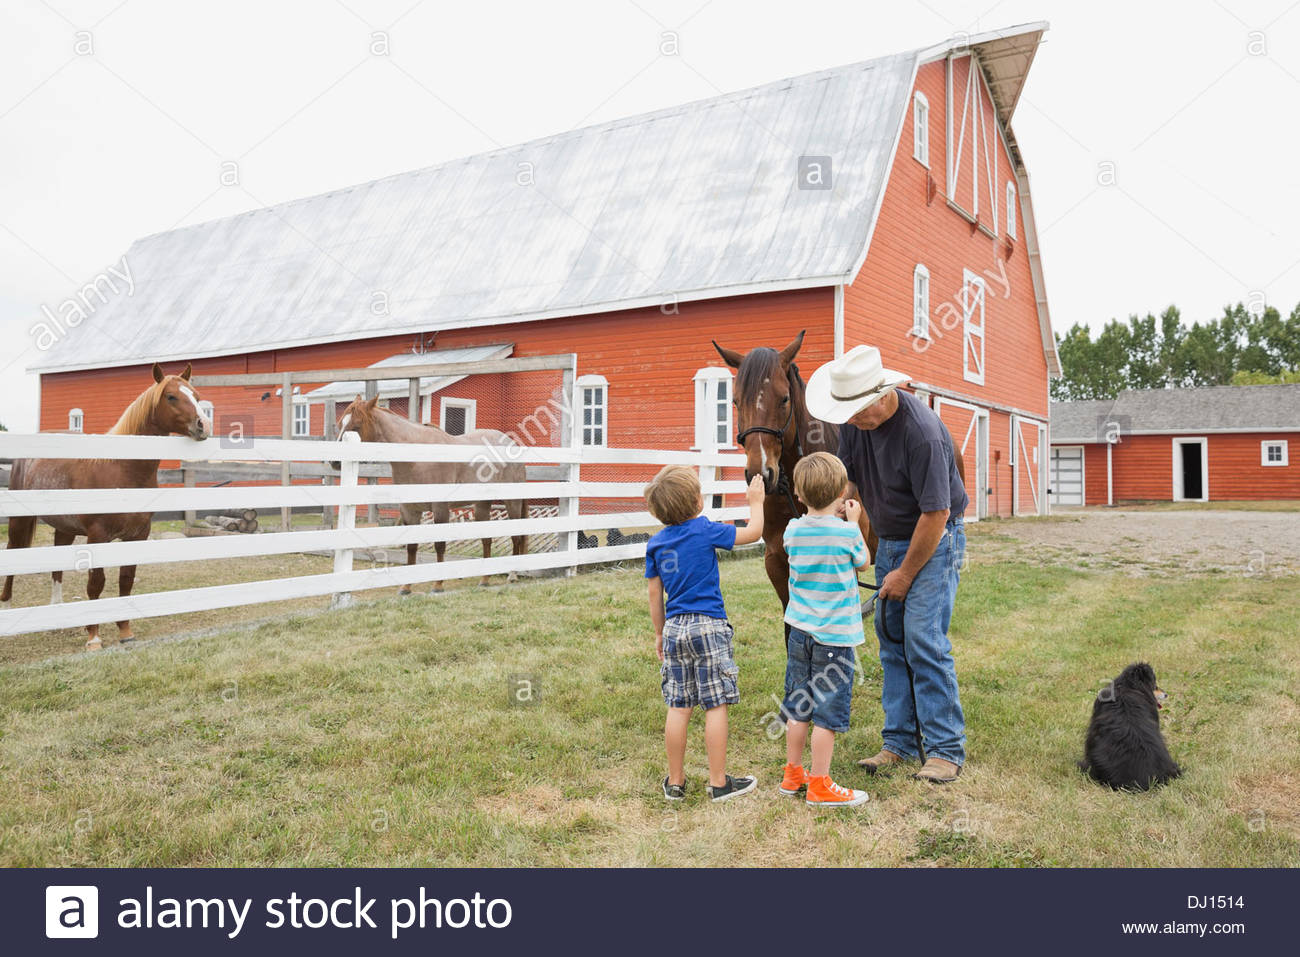 Grandfather showing grandchildren how to feed a horse - Stock Image